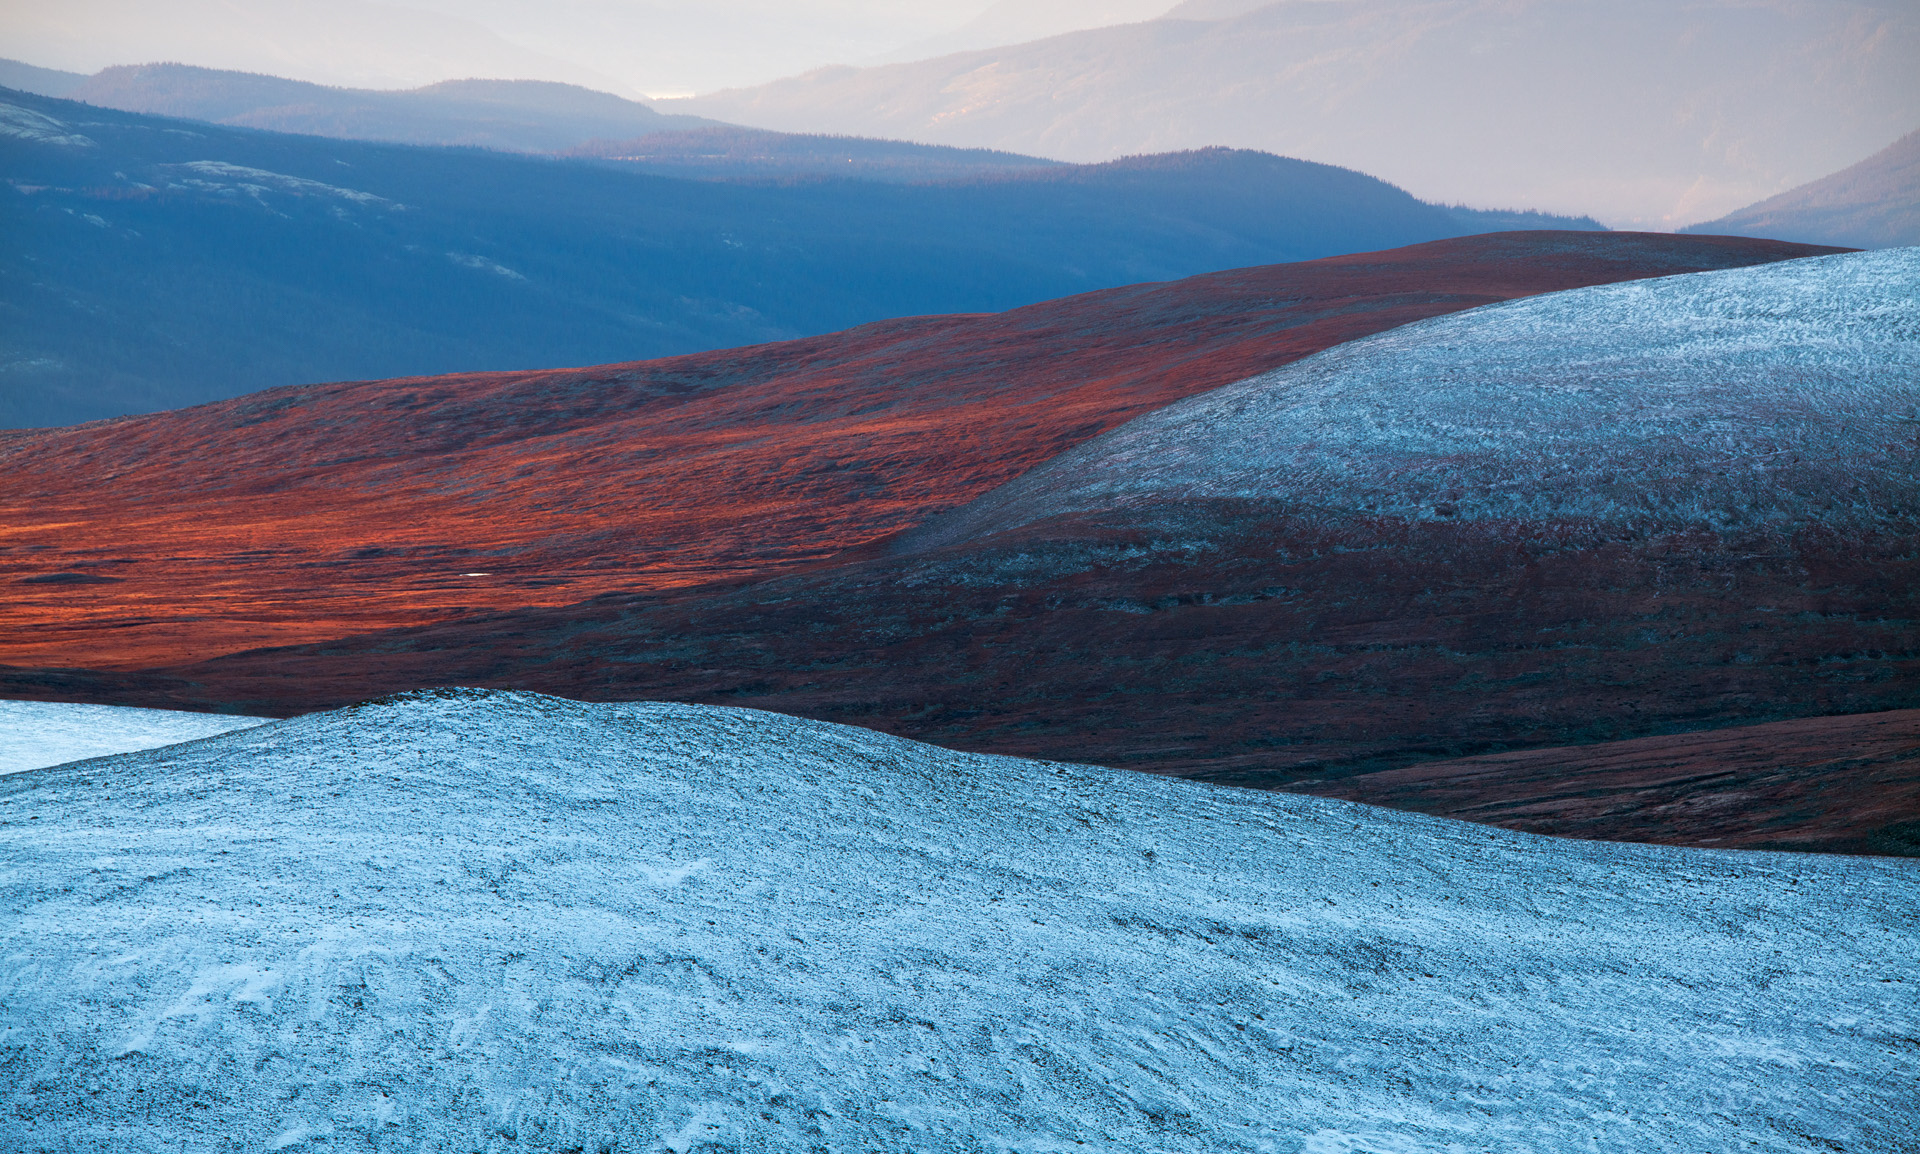 Red and blue mountainscape